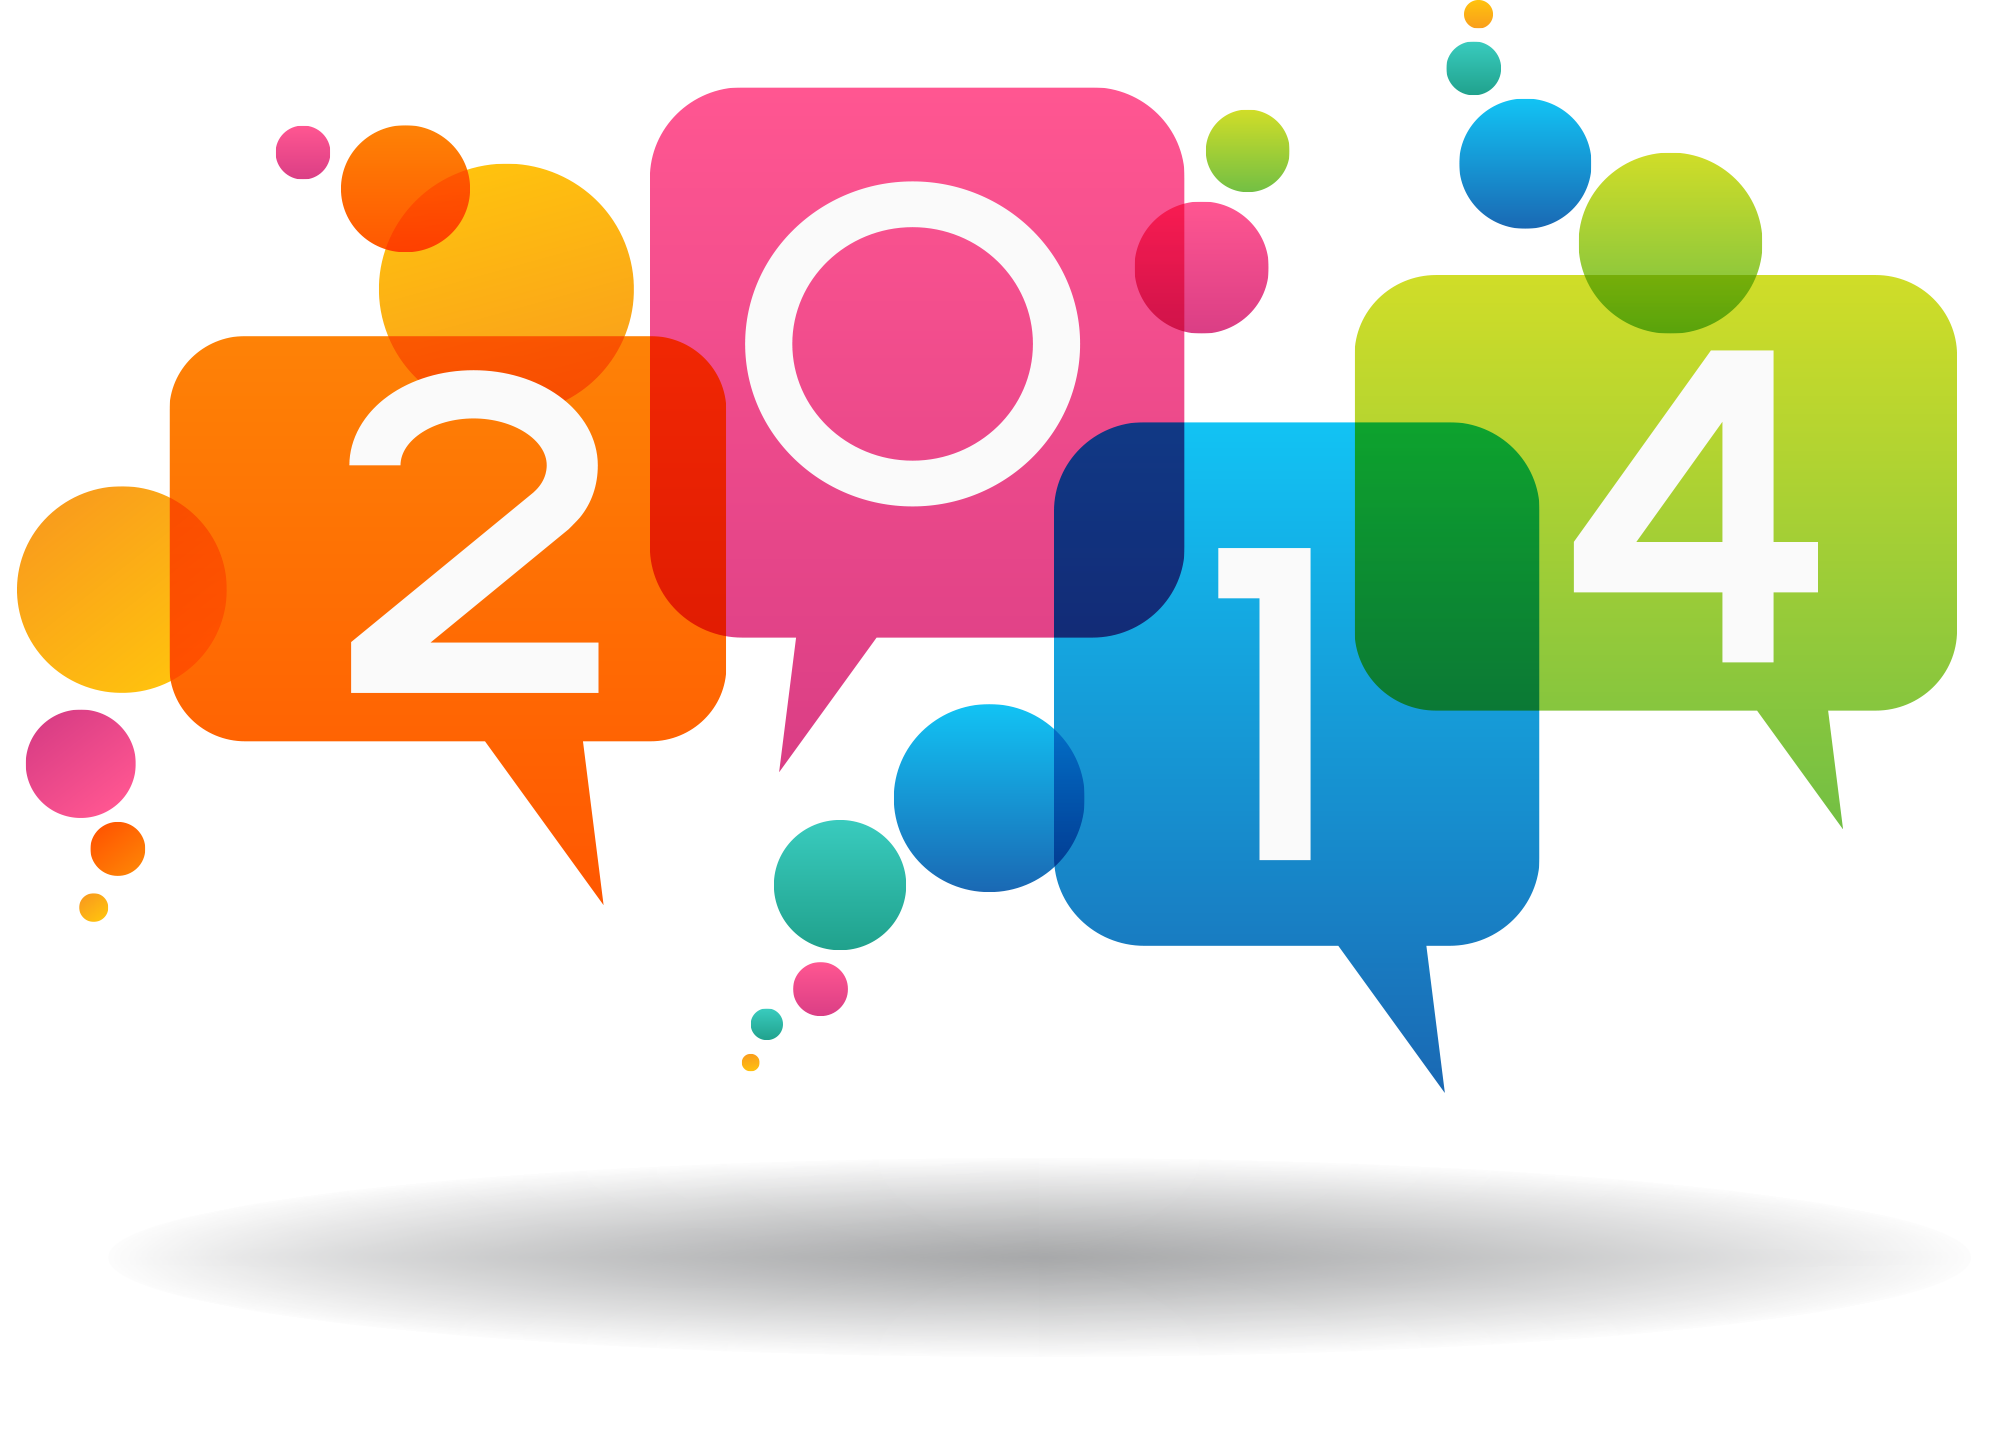 the business trends of 2014 paysimple